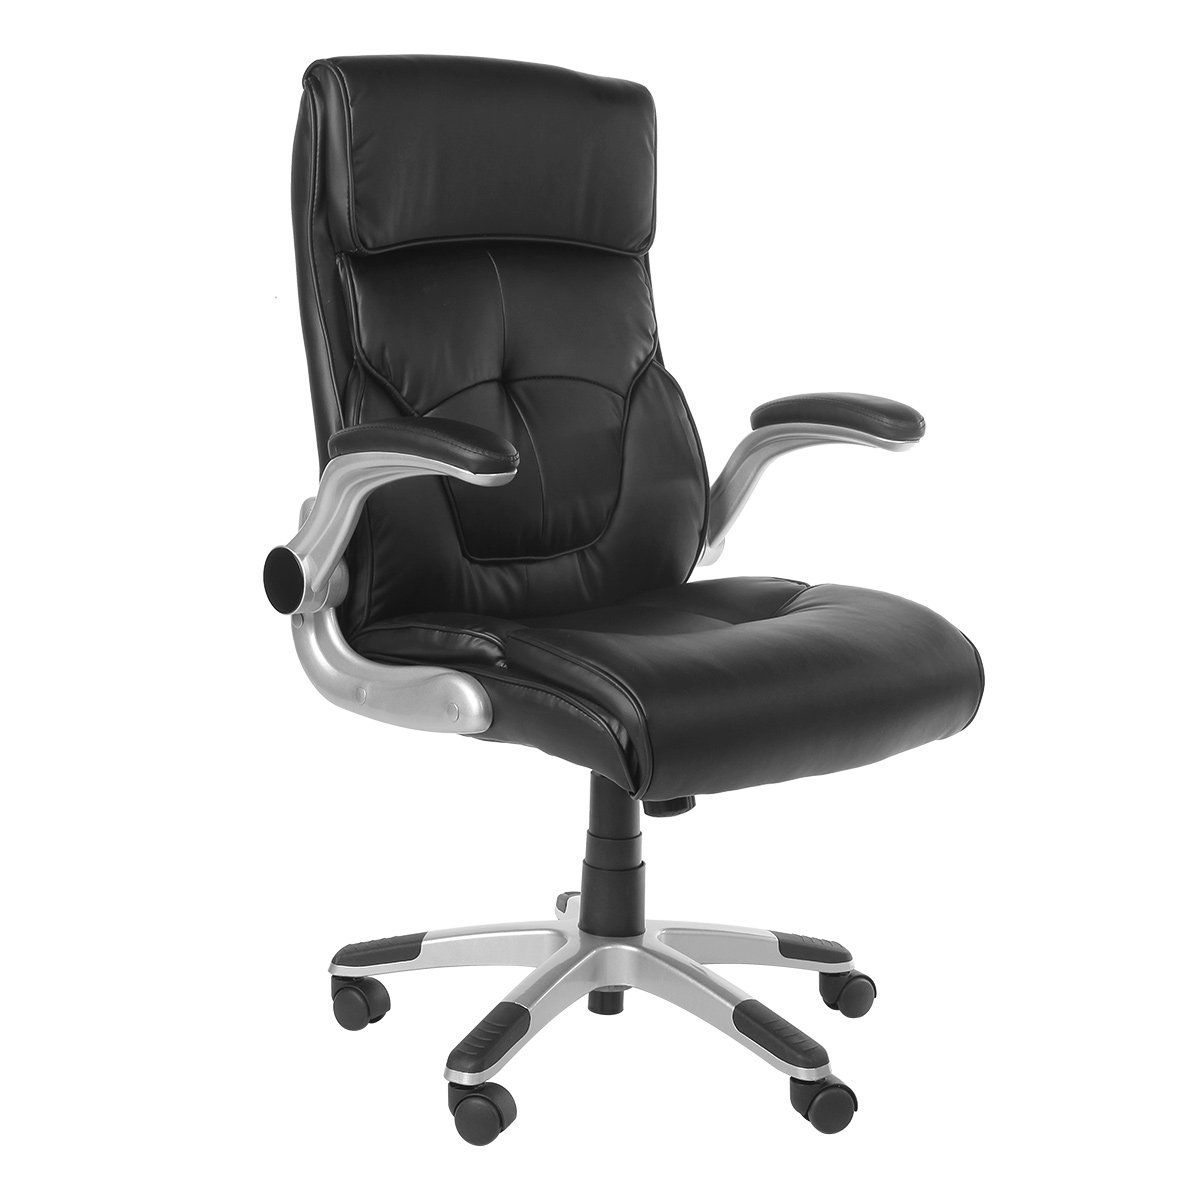 yamasoro ergonomic executive leather office chair high back with